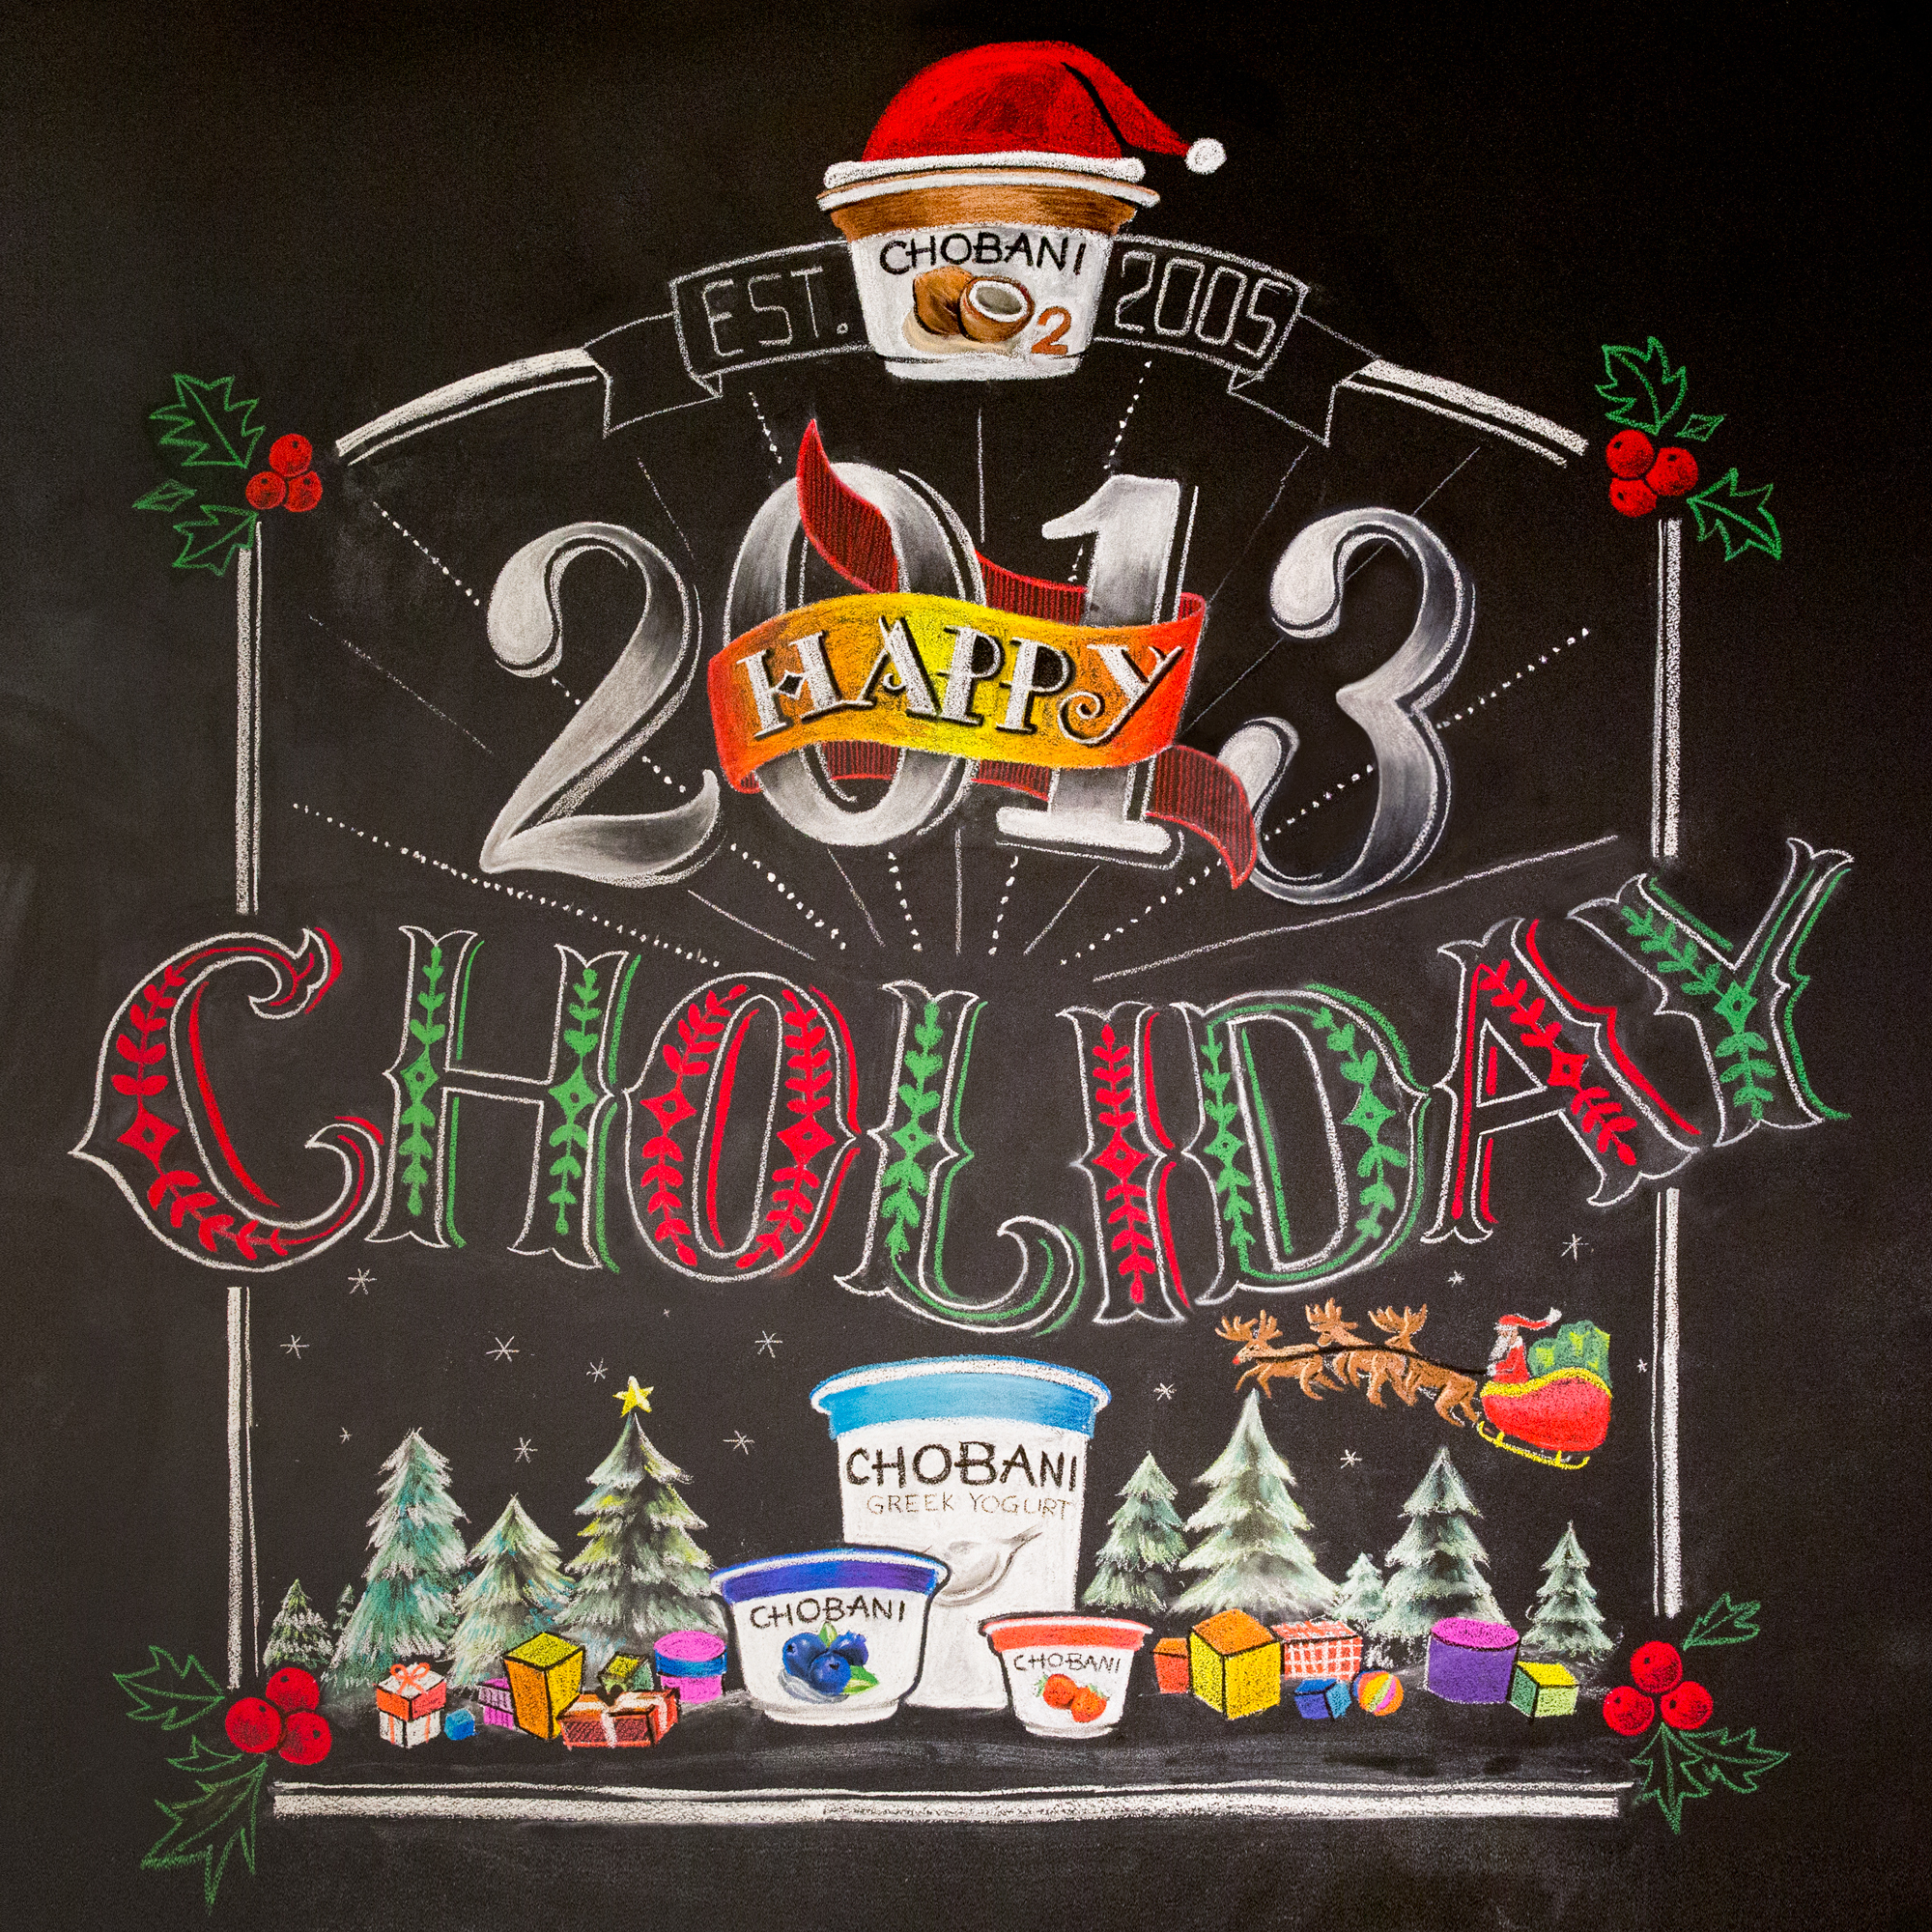 Choliday-2013-chalk.jpg